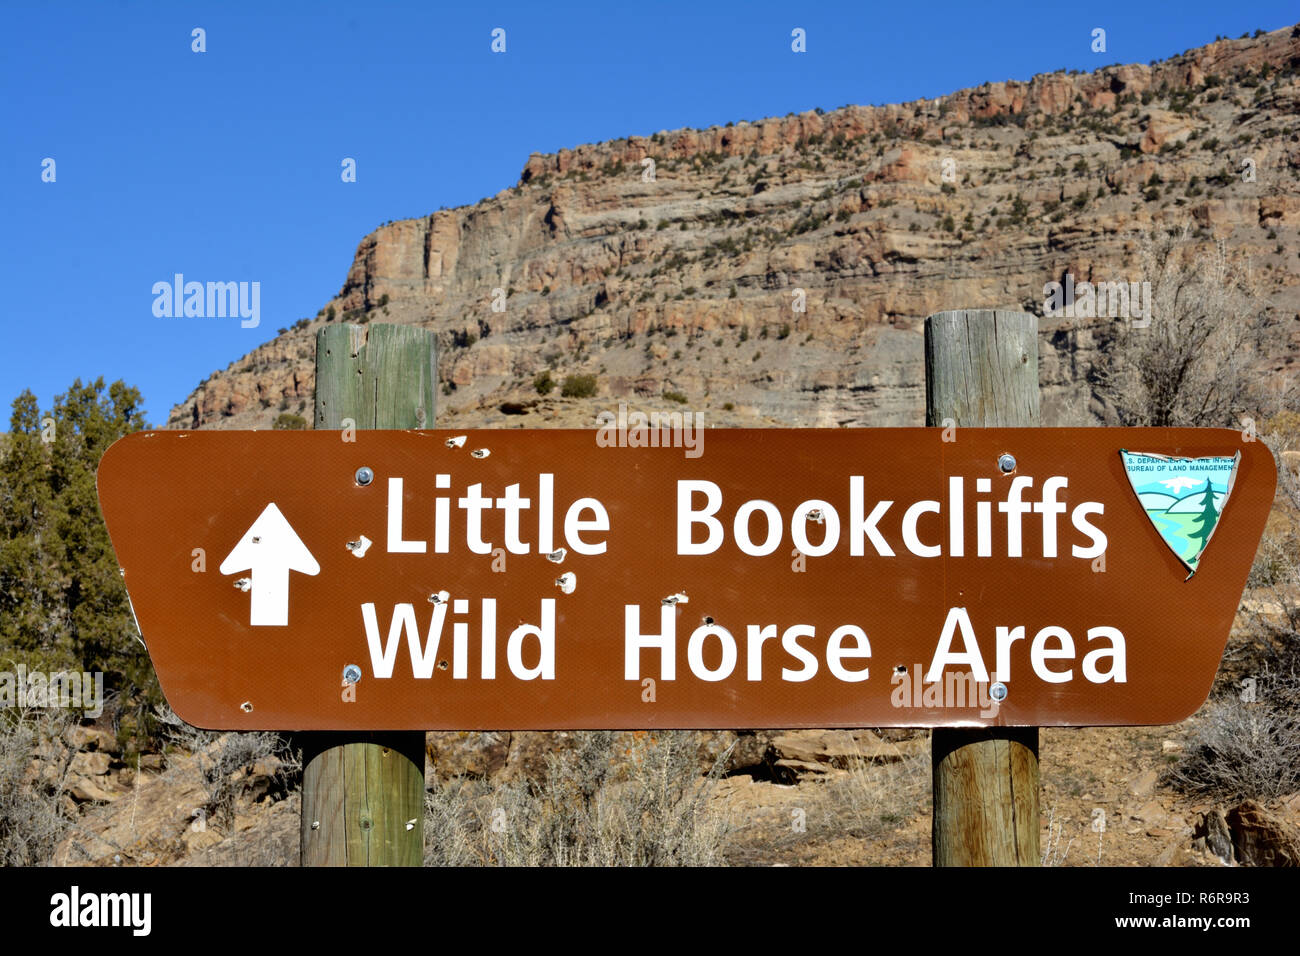 Trailhead sign at Little Book Cliffs Wild Horse Area in Western Colorado - Stock Image